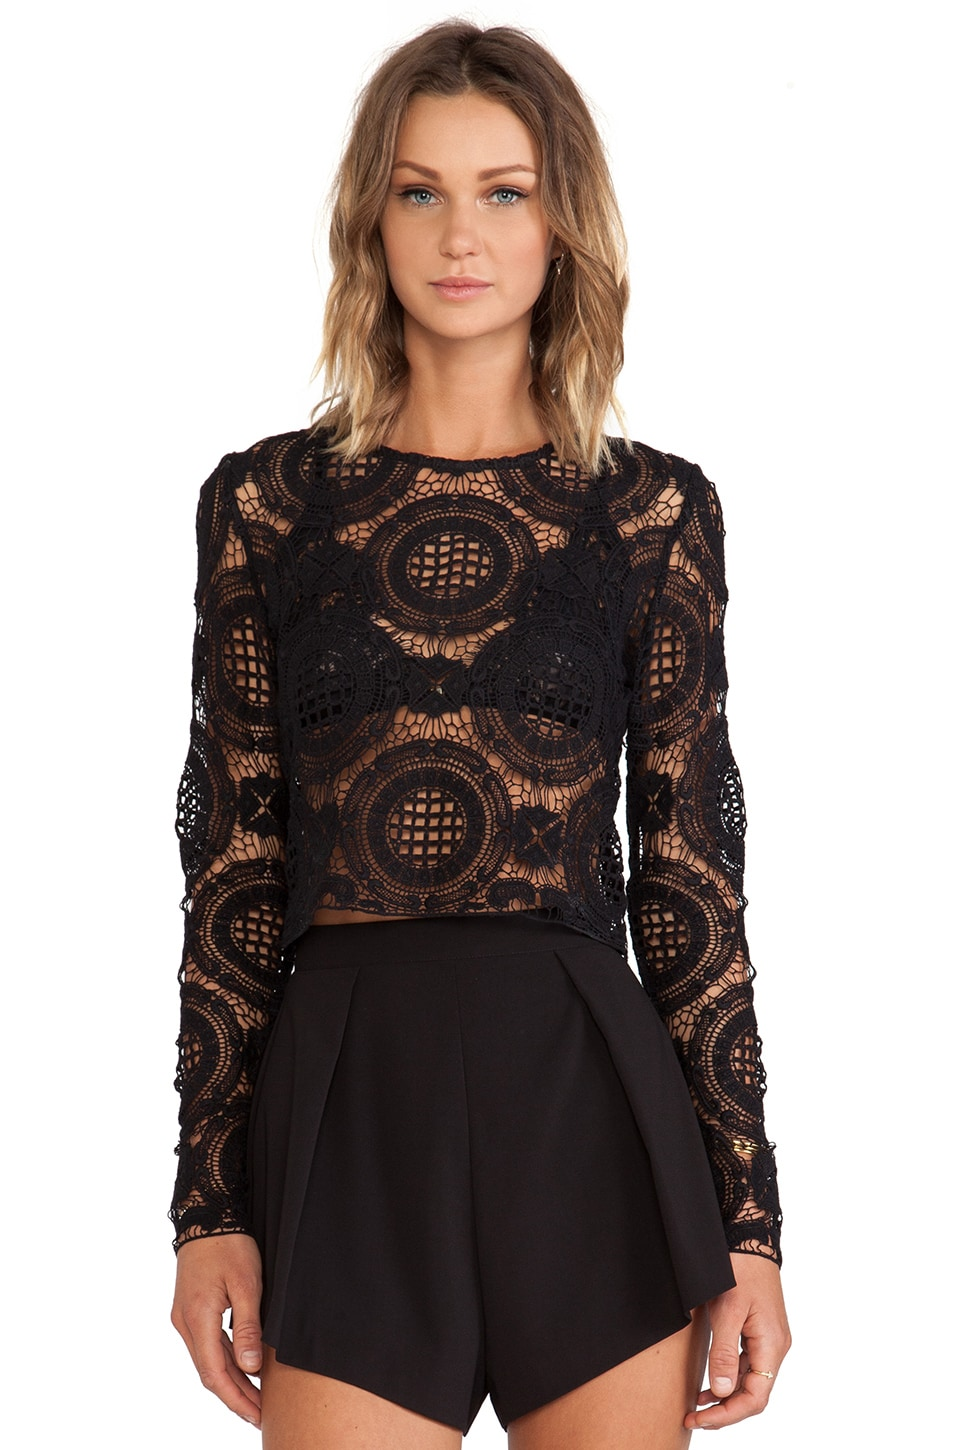 Alexis X REVOLVE Frederick Long Sleeve Lace Crop Top in Black